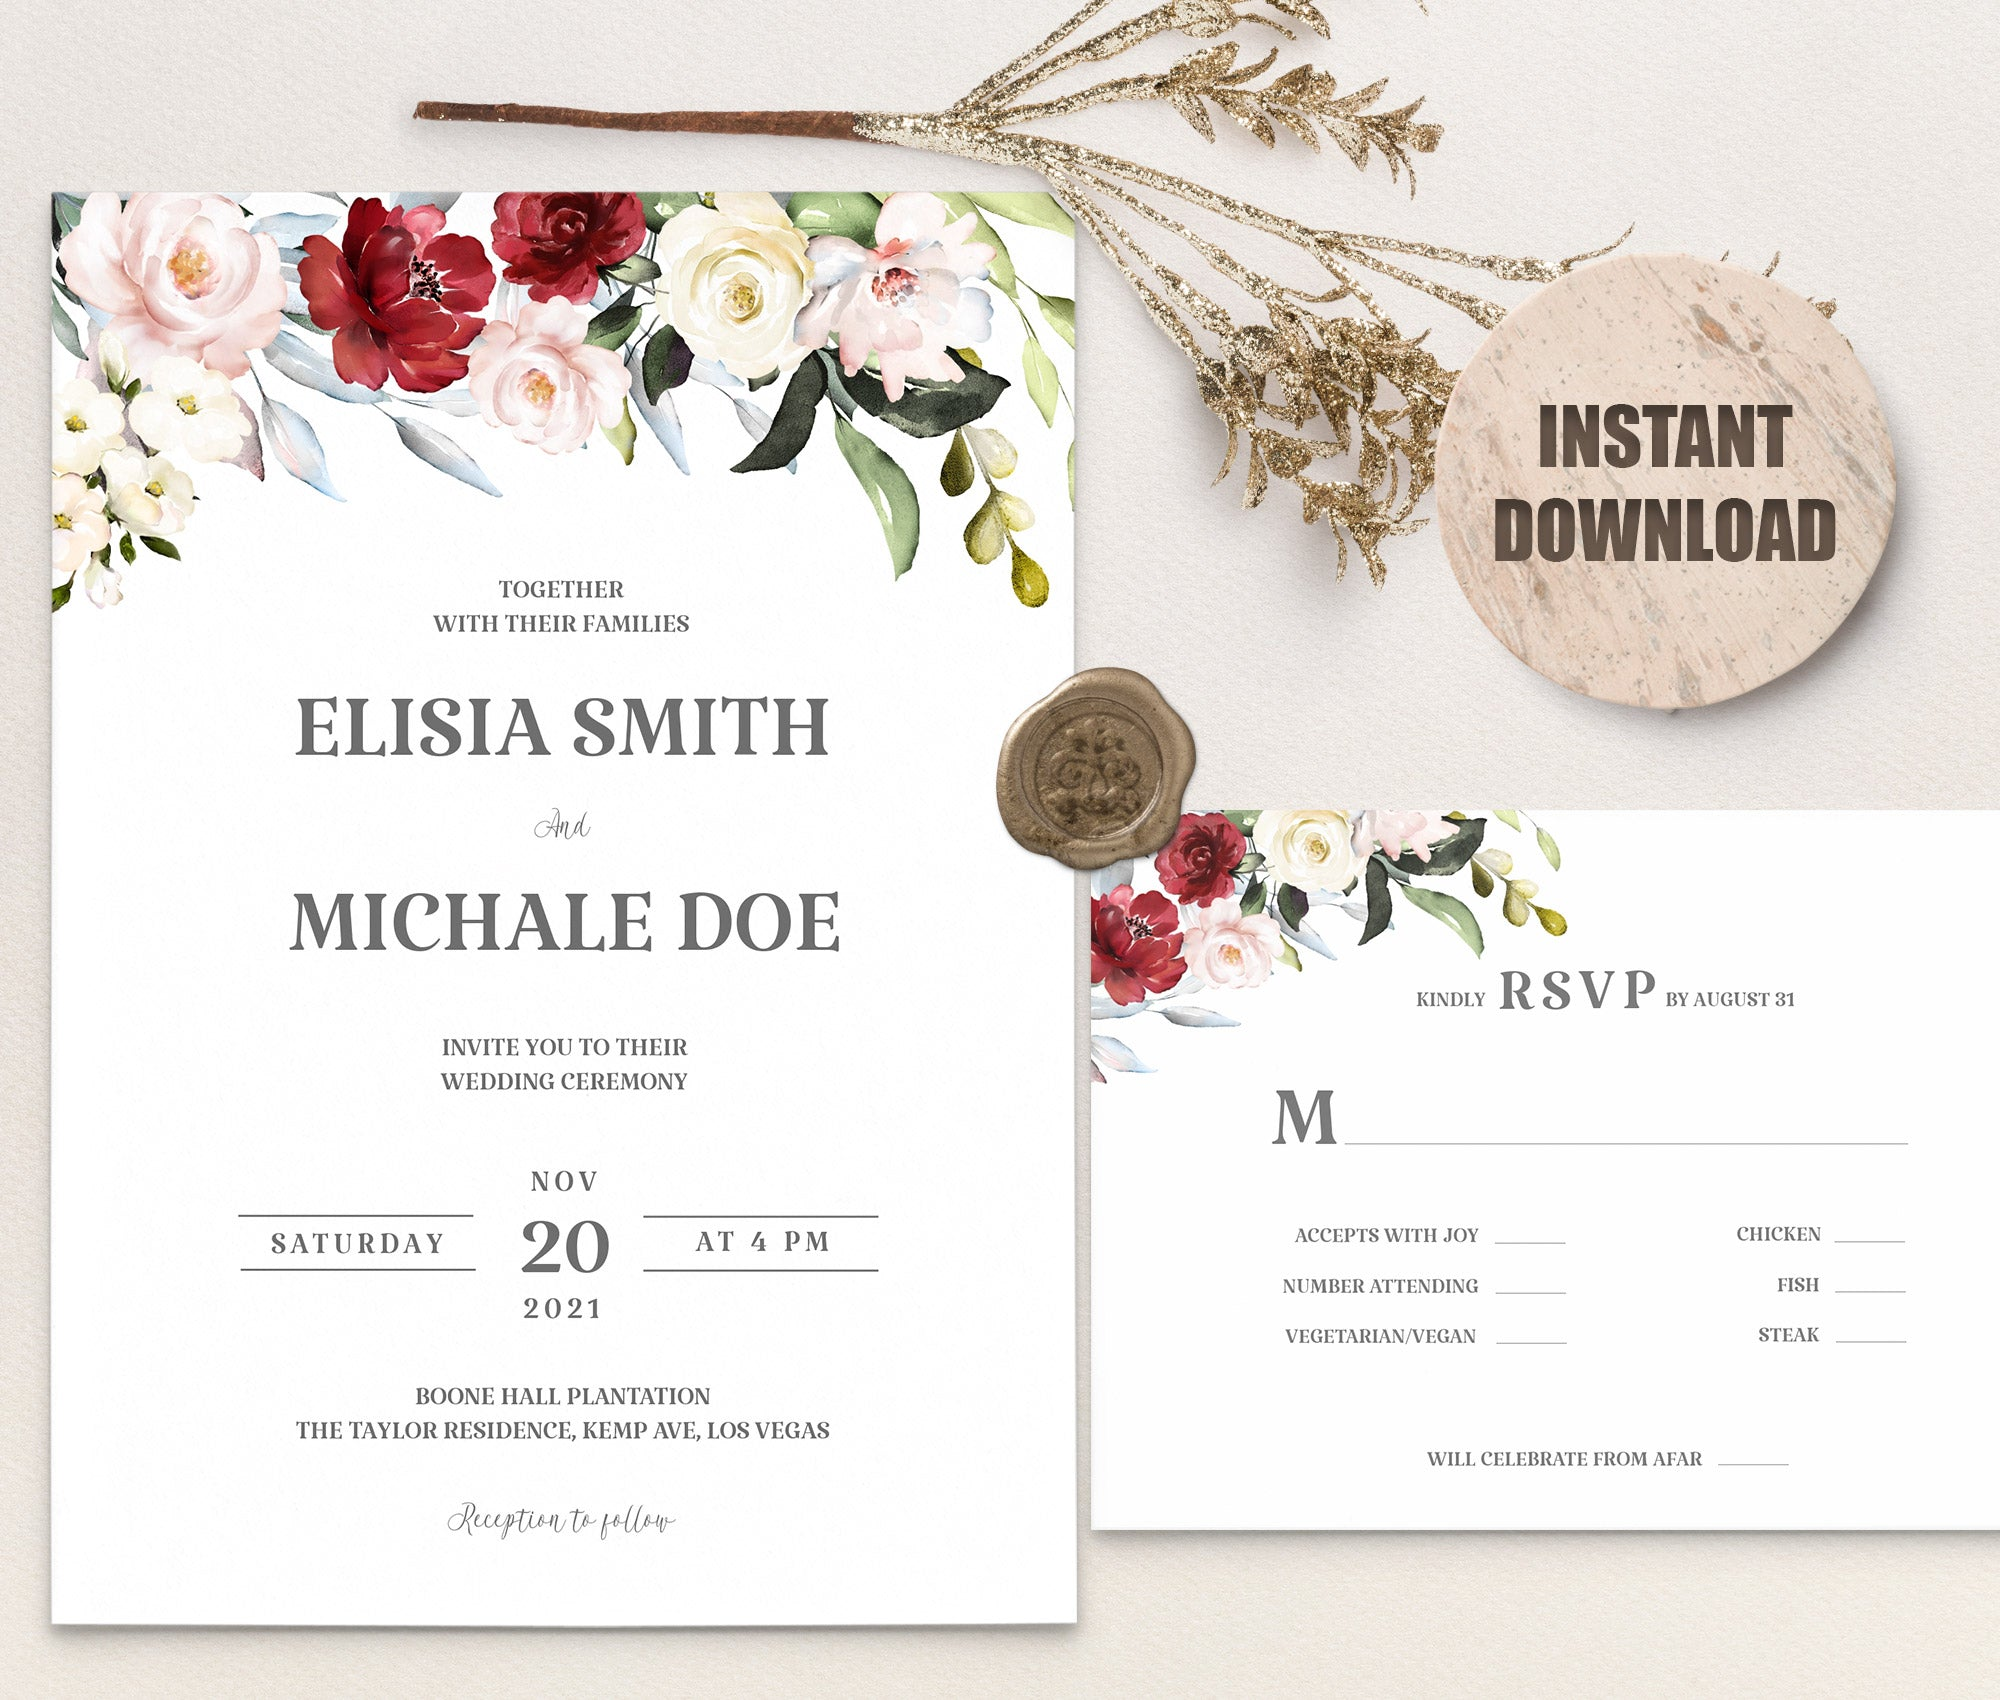 LOVAL Wedding Invitation and RSVP set 2